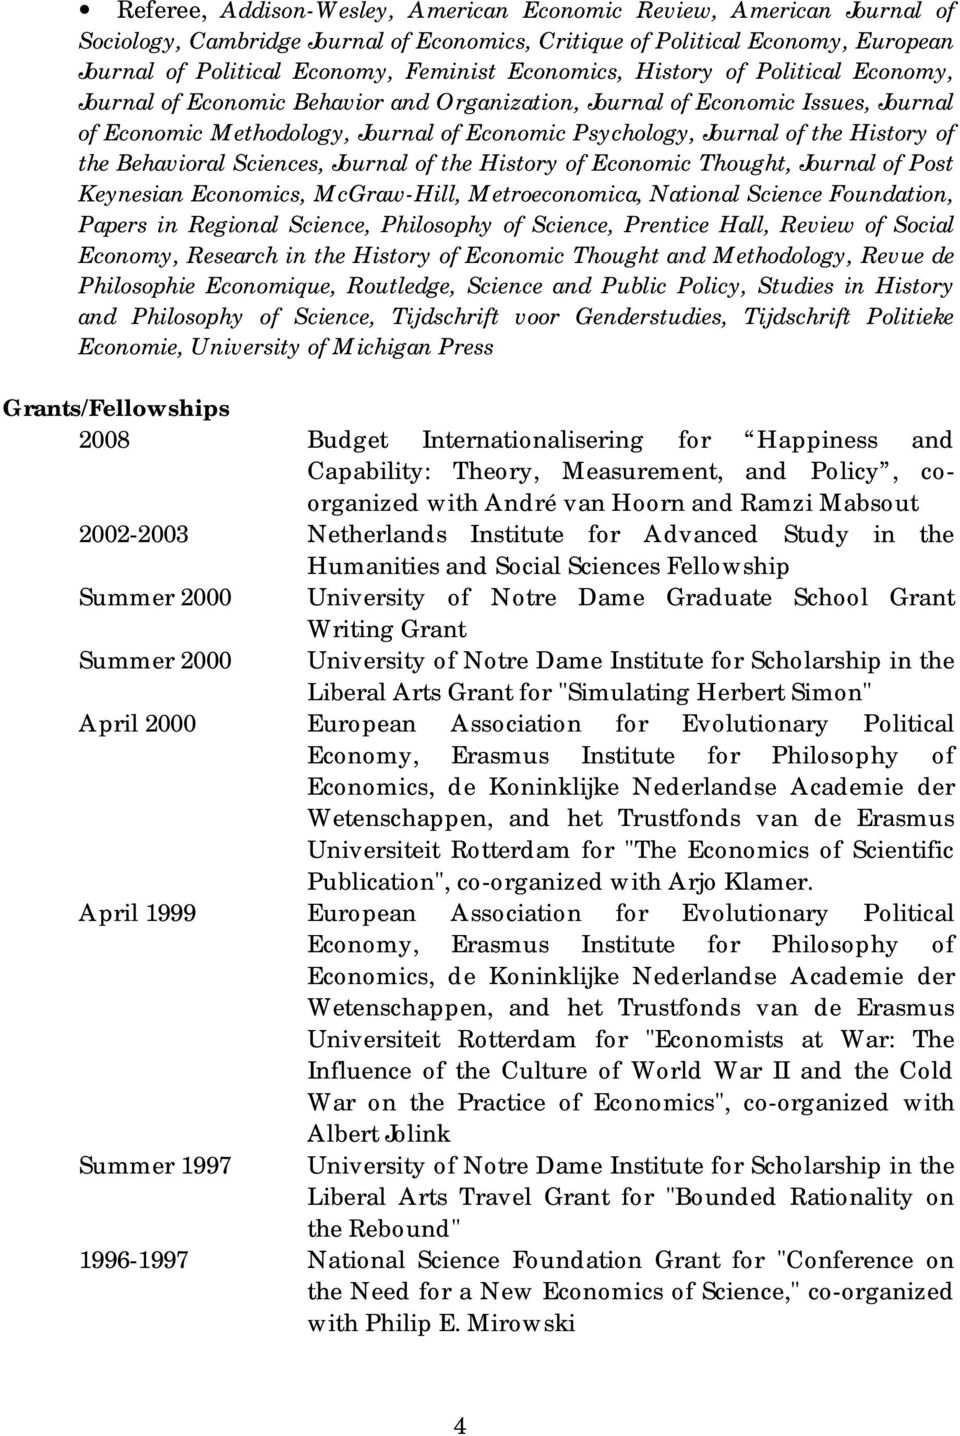 History of the Behavioral Sciences, Journal of the History of Economic Thought, Journal of Post Keynesian Economics, McGraw-Hill, Metroeconomica, National Science Foundation, Papers in Regional